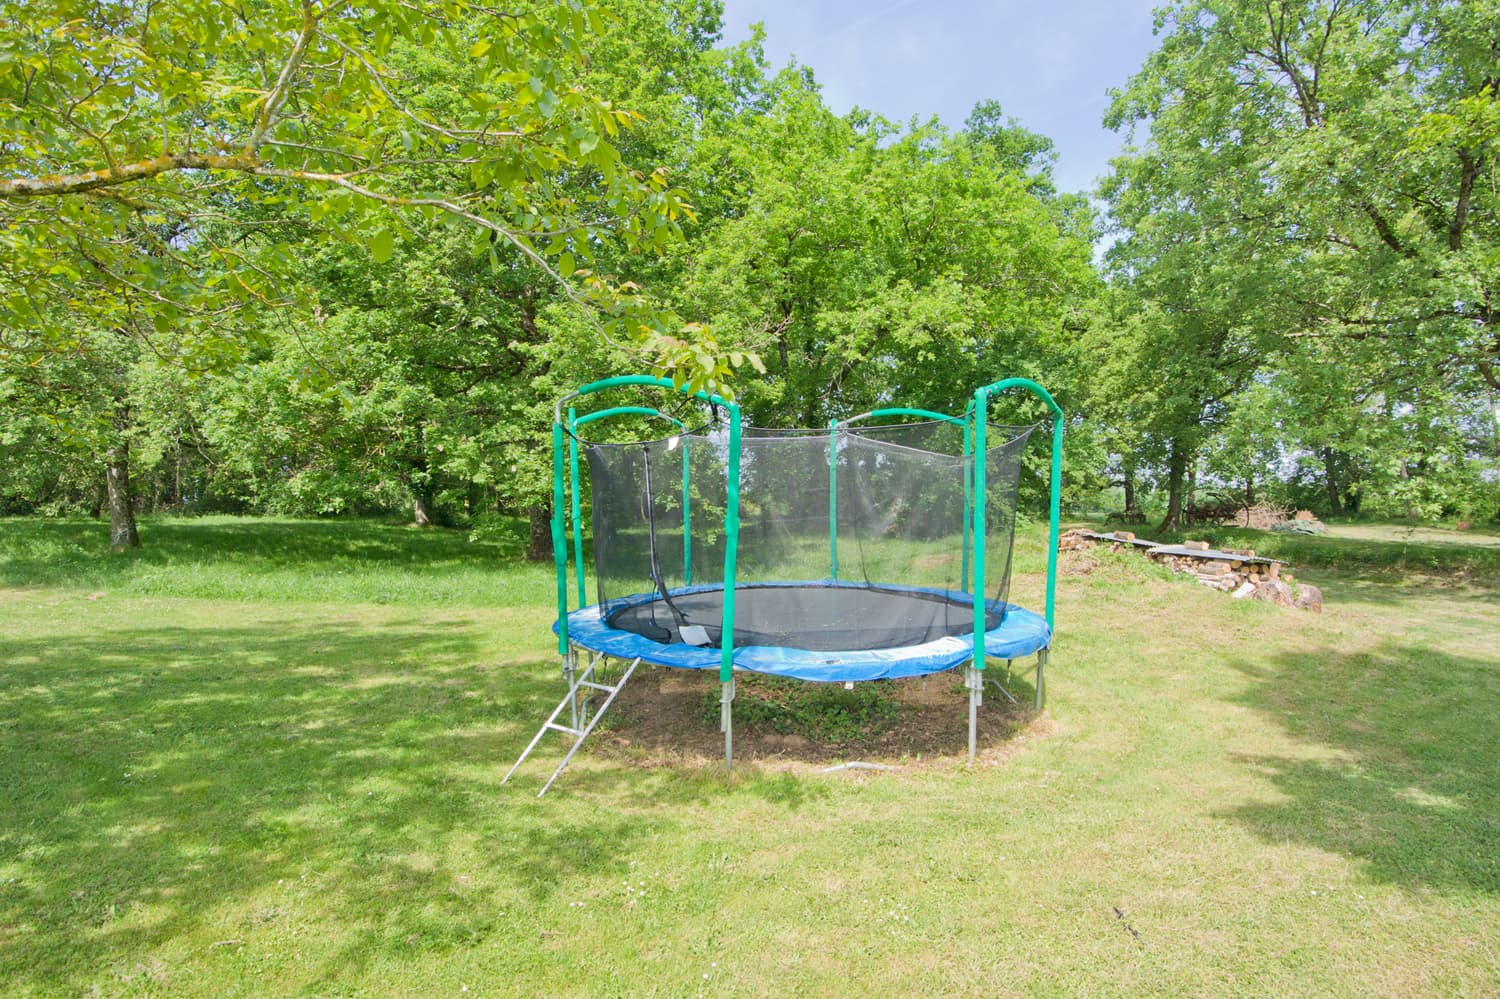 Lawned garden with trampoline